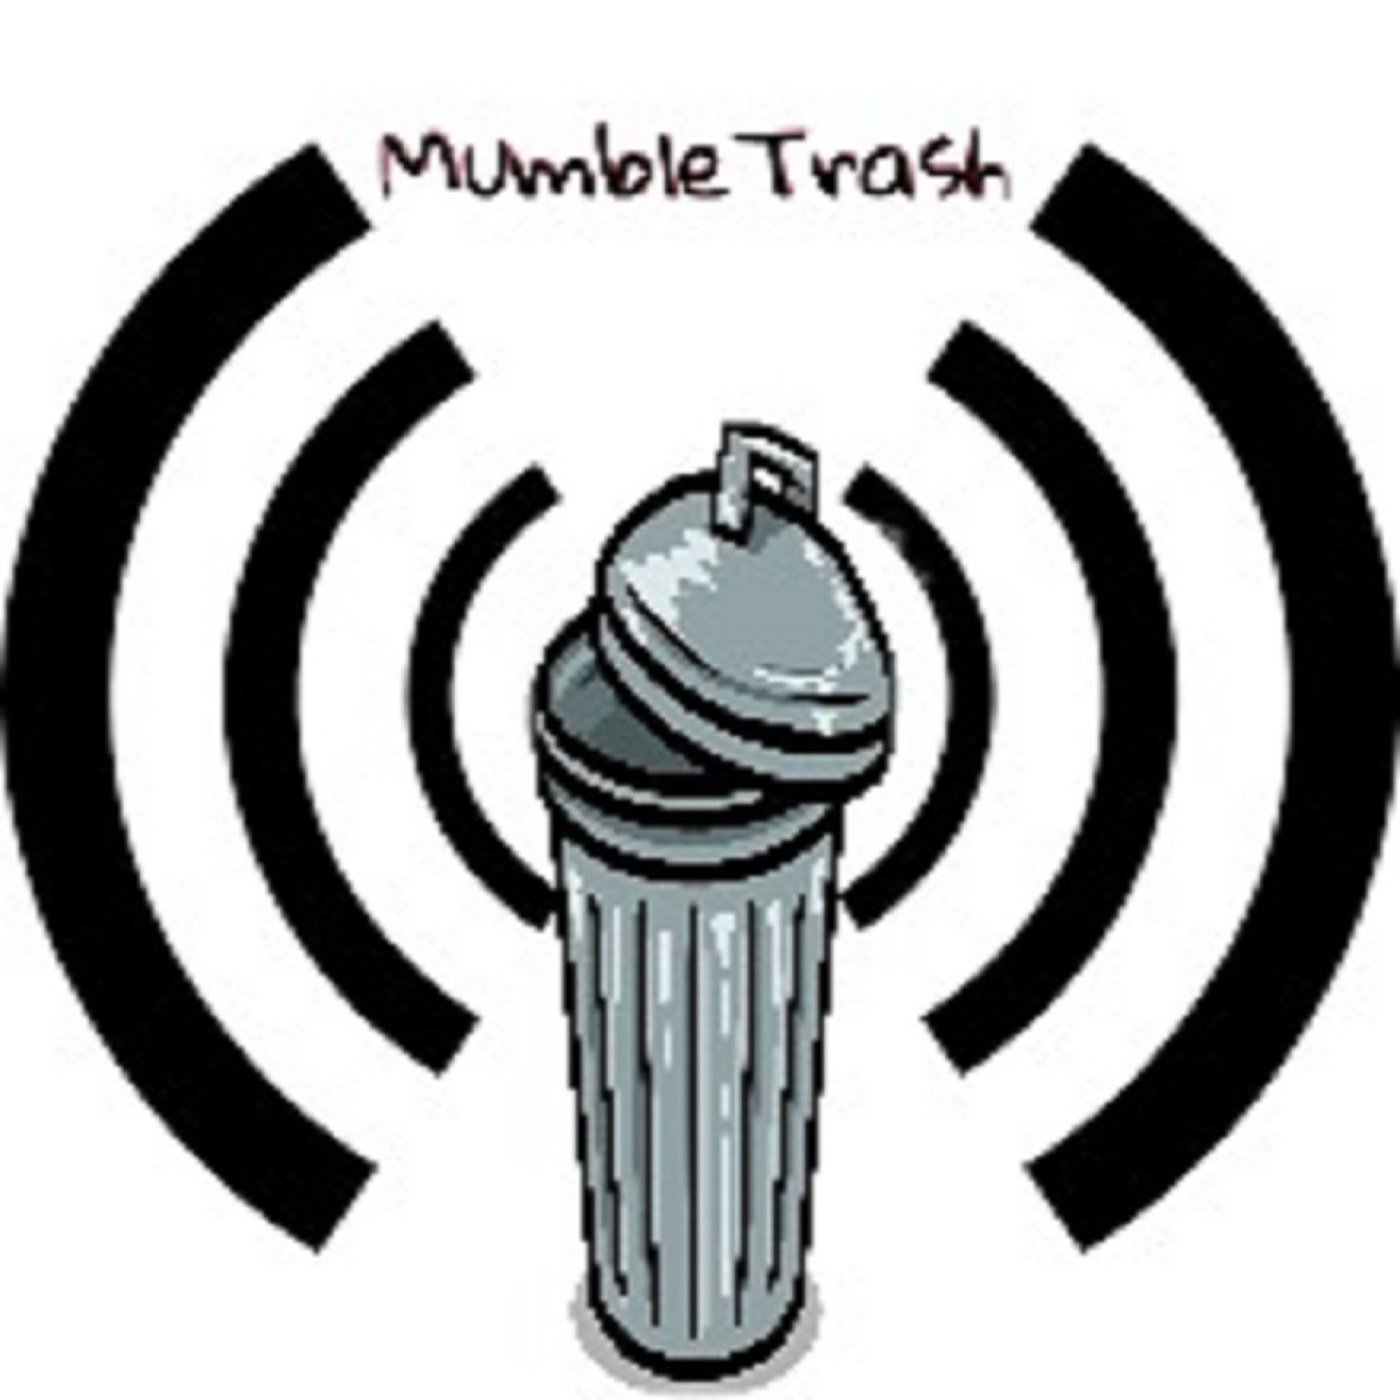 MumbleTrash Entertainment - Podcasts